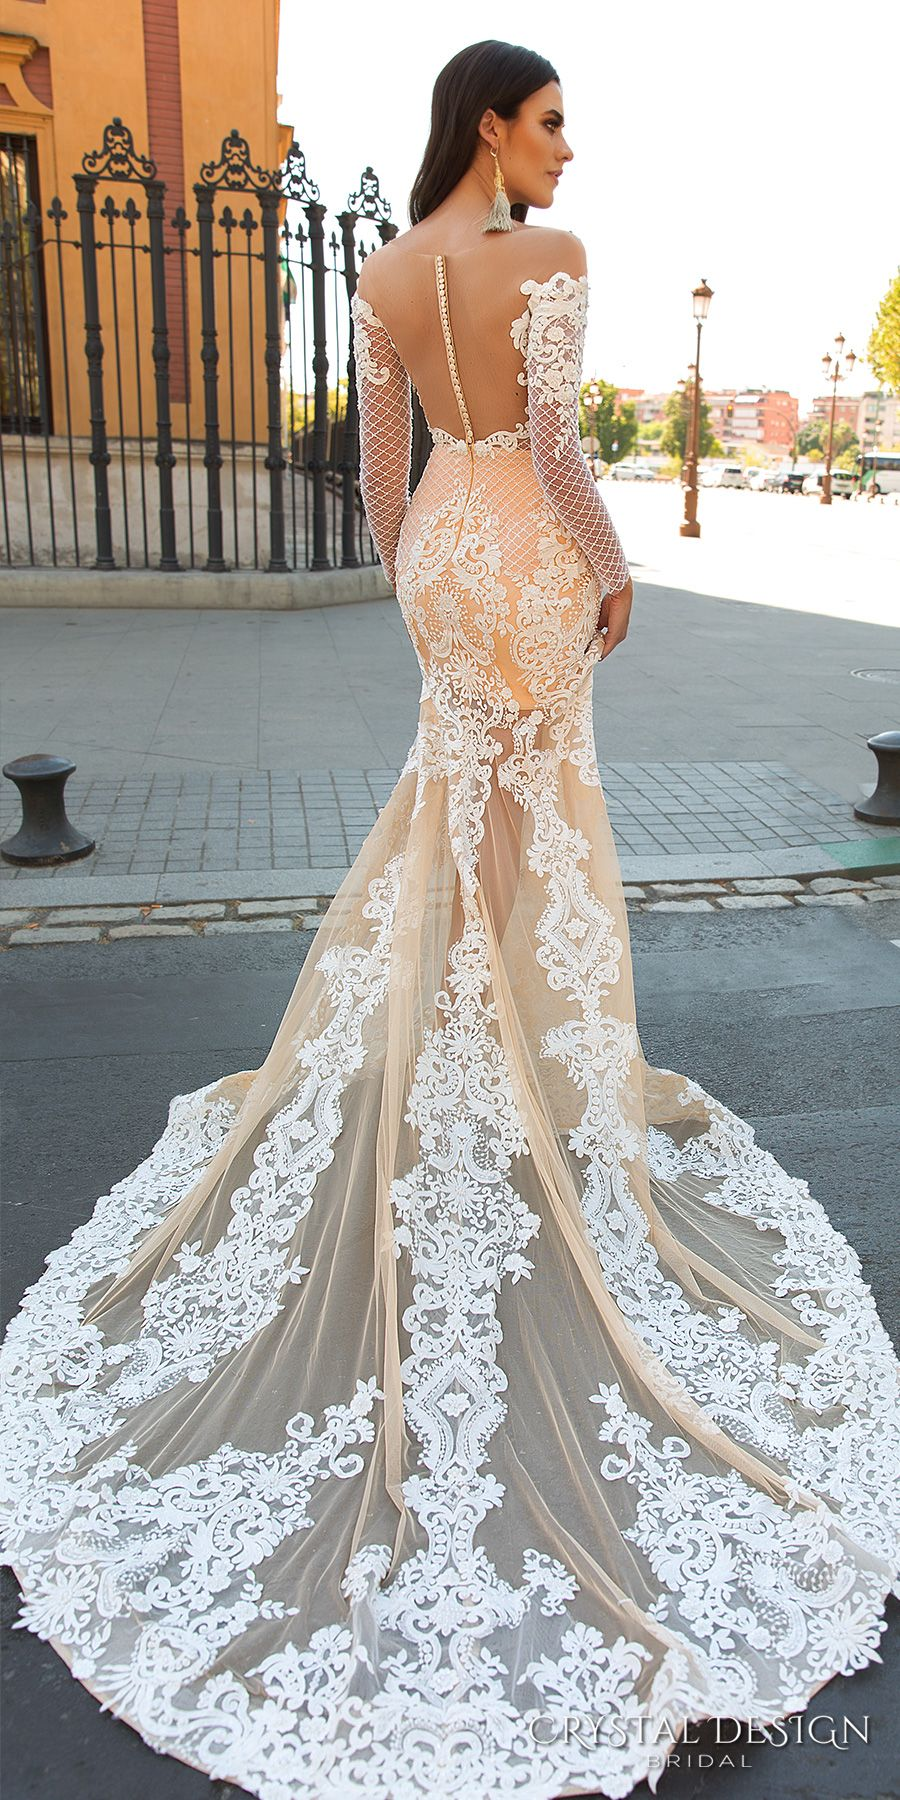 crystal design 2017 bridal long sleeves off the shoulder sweetheart  neckline elegant fit and flare lace wedding dress sheer low back chapel  train (maricol) ... c90fa00cc34b